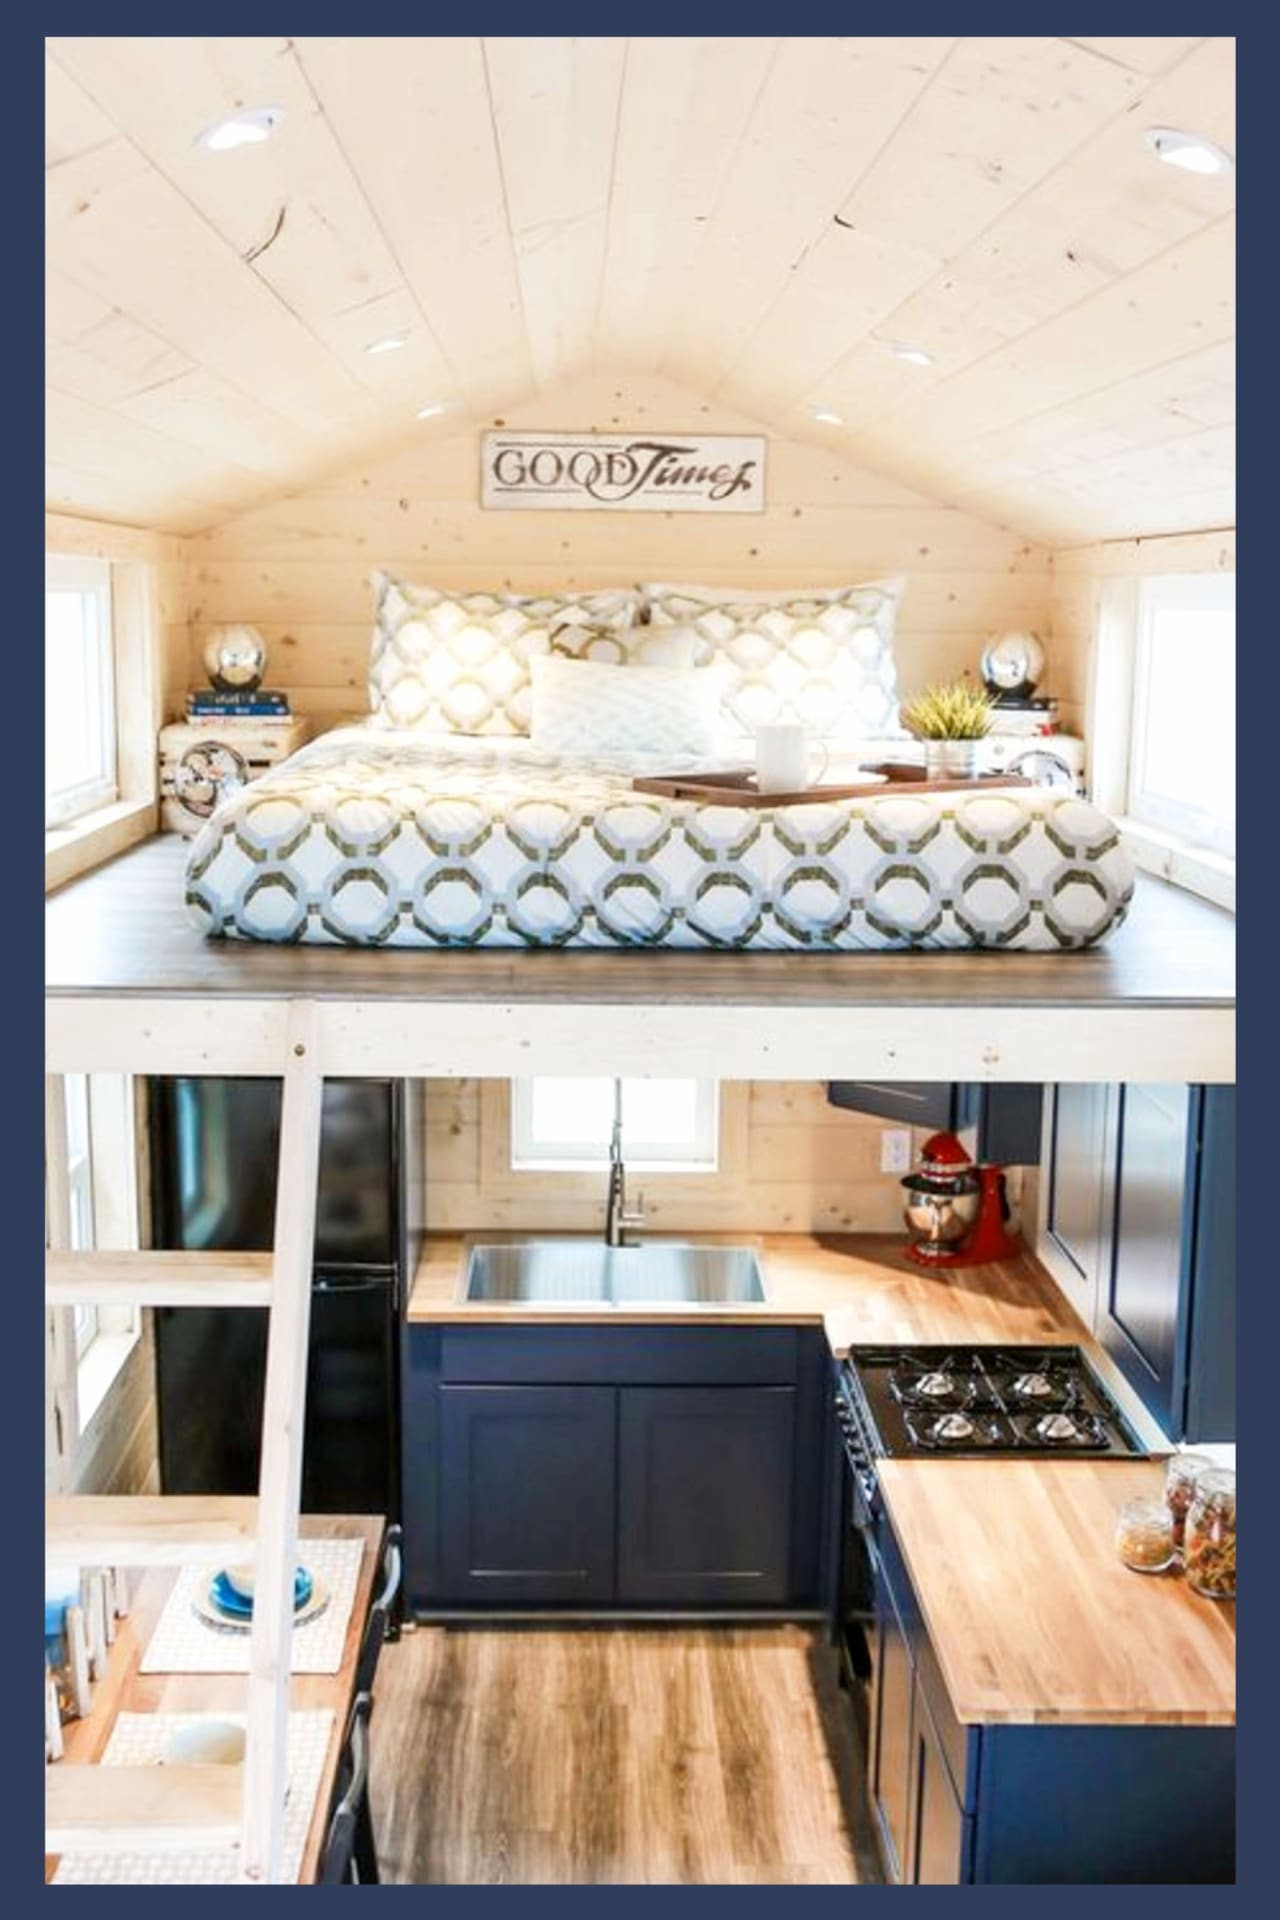 Tiny House Ideas! Love HGTV Tiny Homes? Take a look inside tiny houses with these tiny house interior photos and images (interior AND exterior) These tiny house designs and floor plans are perfect tiny house plans under 1000 sq ft - they're like a tiny apartment on wheels for tiny home communities! Tiny house bedroom ideas - loft ideas for tiny home